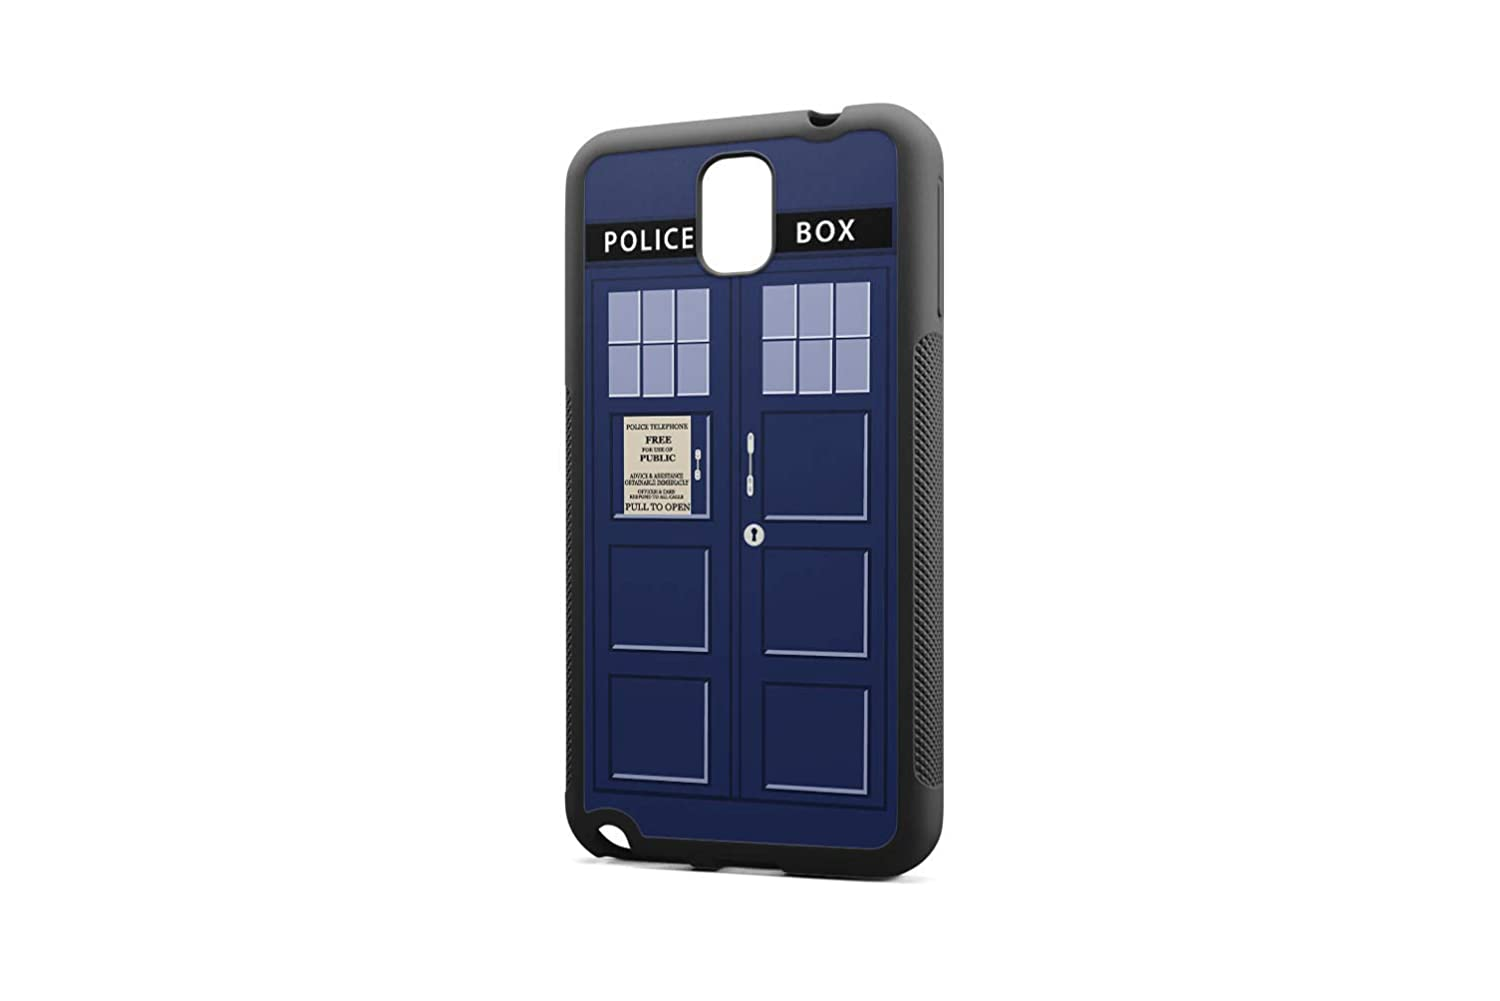 Tpu Case Cover Phone Tardis Box Doctor Who For Iphone 5 5s Se 6 6s 7 8 Plus X Xr Xs Max House Cellphones & Telecommunications